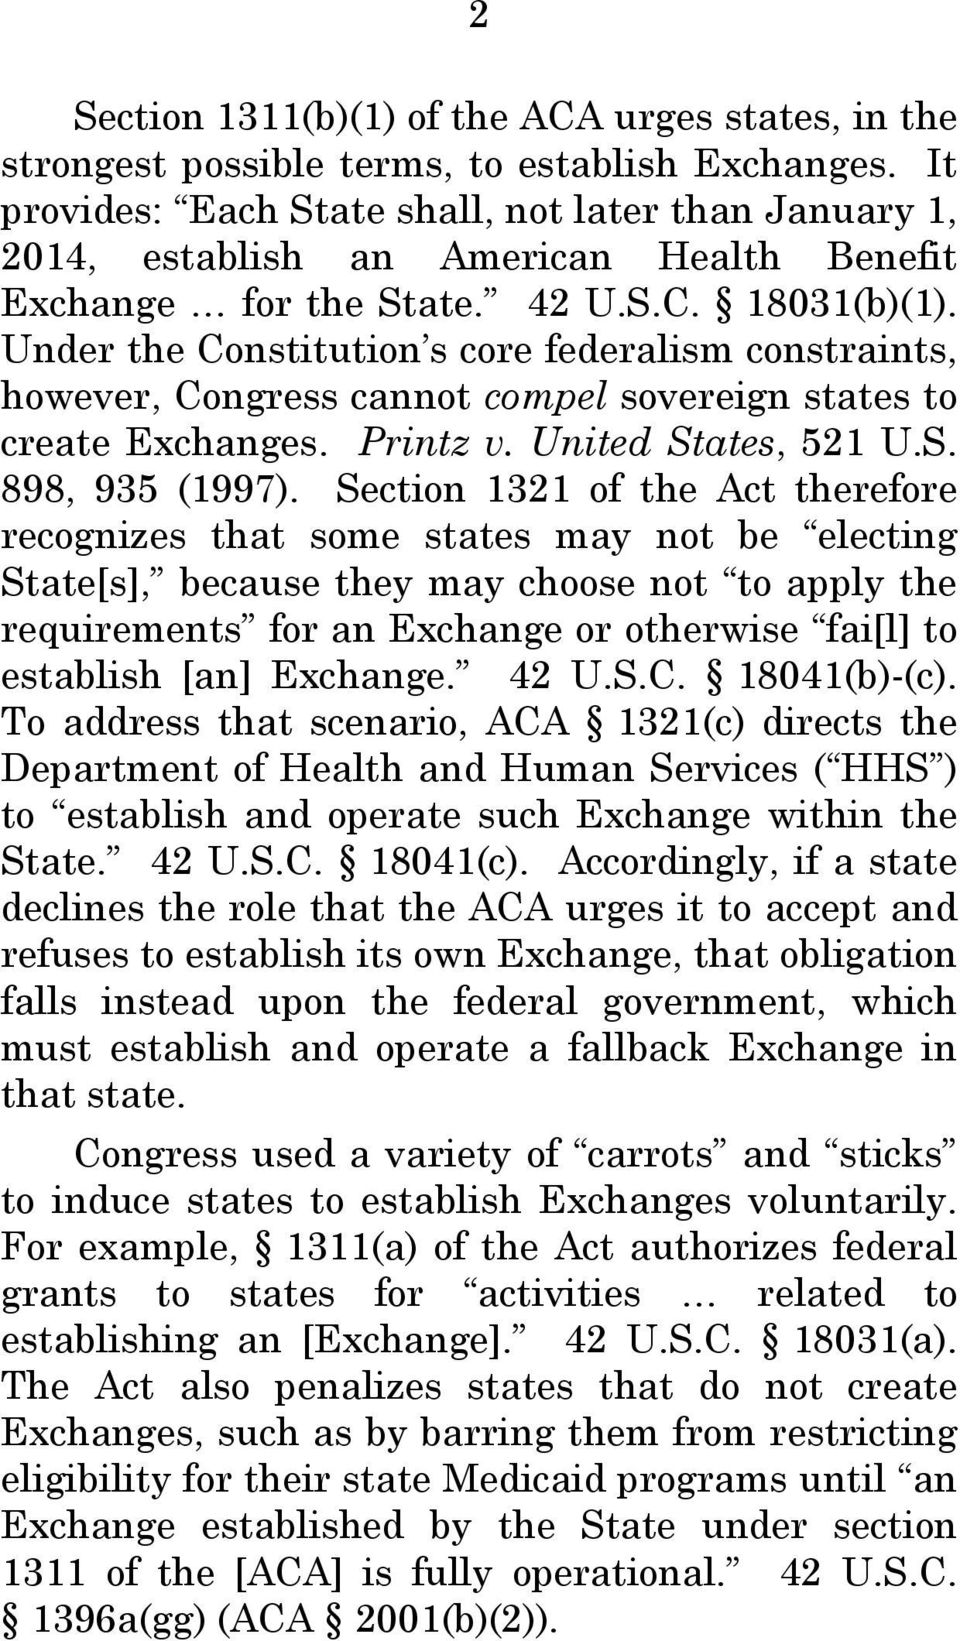 Under the Constitution s core federalism constraints, however, Congress cannot compel sovereign states to create Exchanges. Printz v. United States, 521 U.S. 898, 935 (1997).